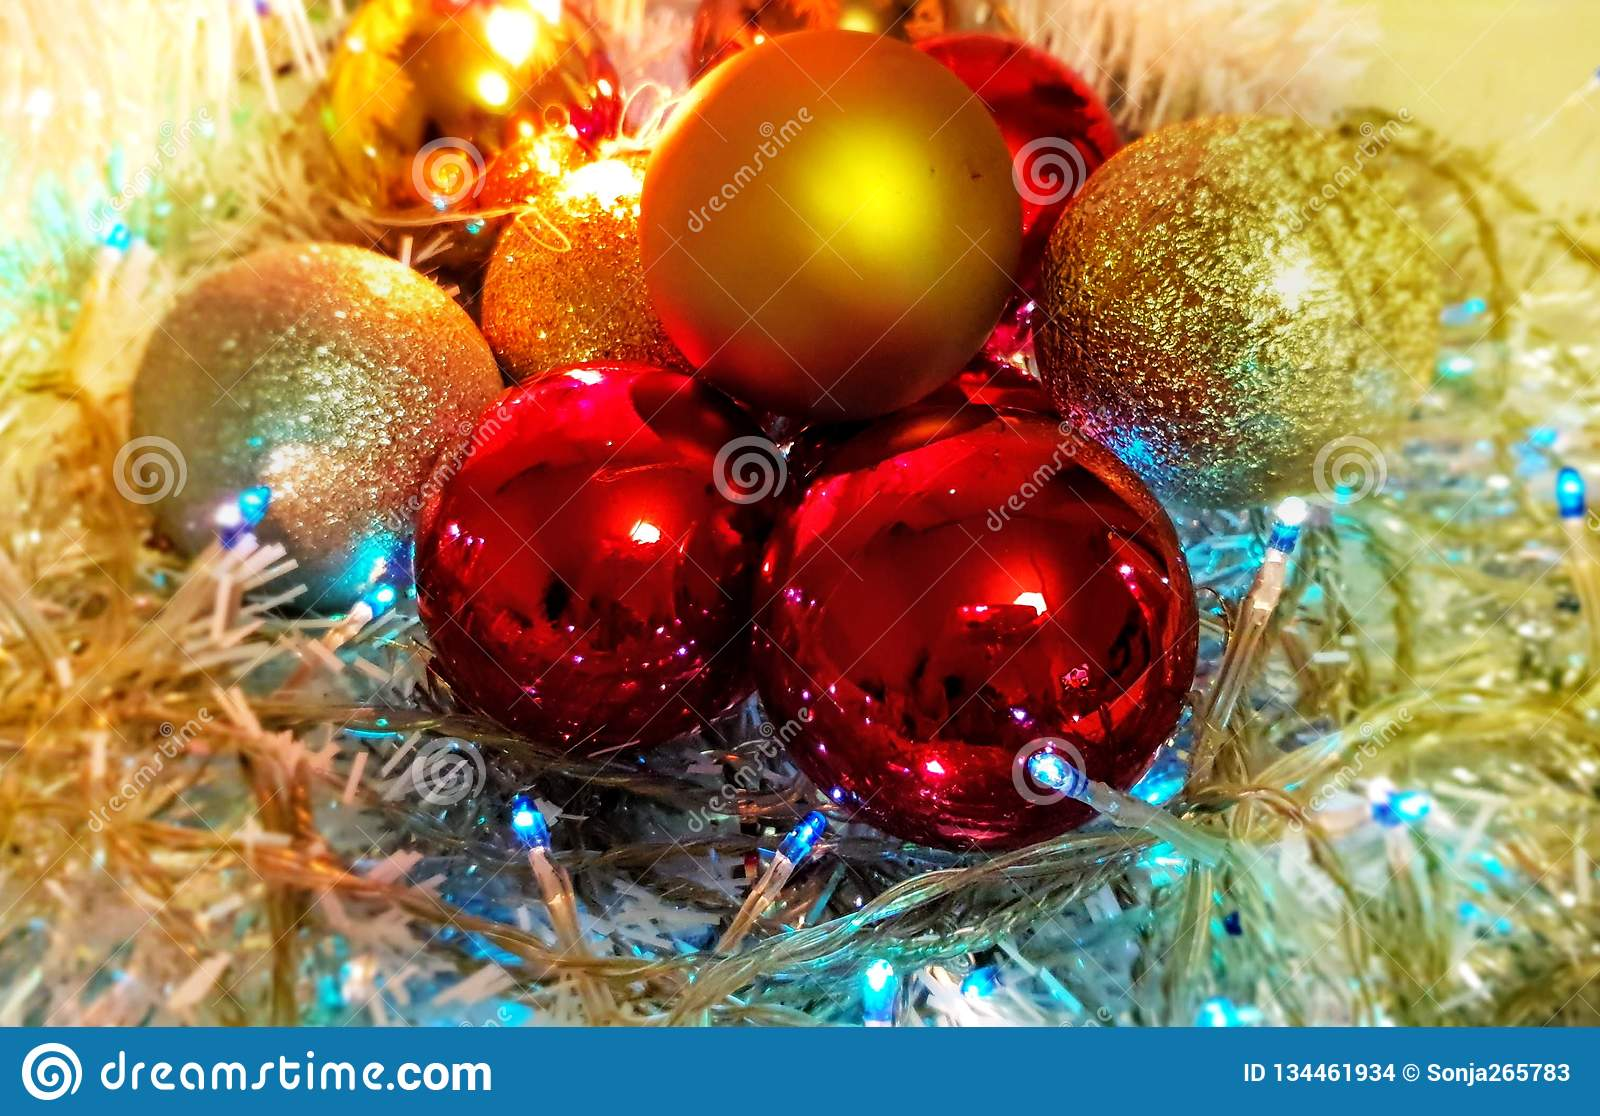 Red And Silver Christmas Decorations Ideas.Colorful Christmas Decoration Ideas Red Blue Gold Silver